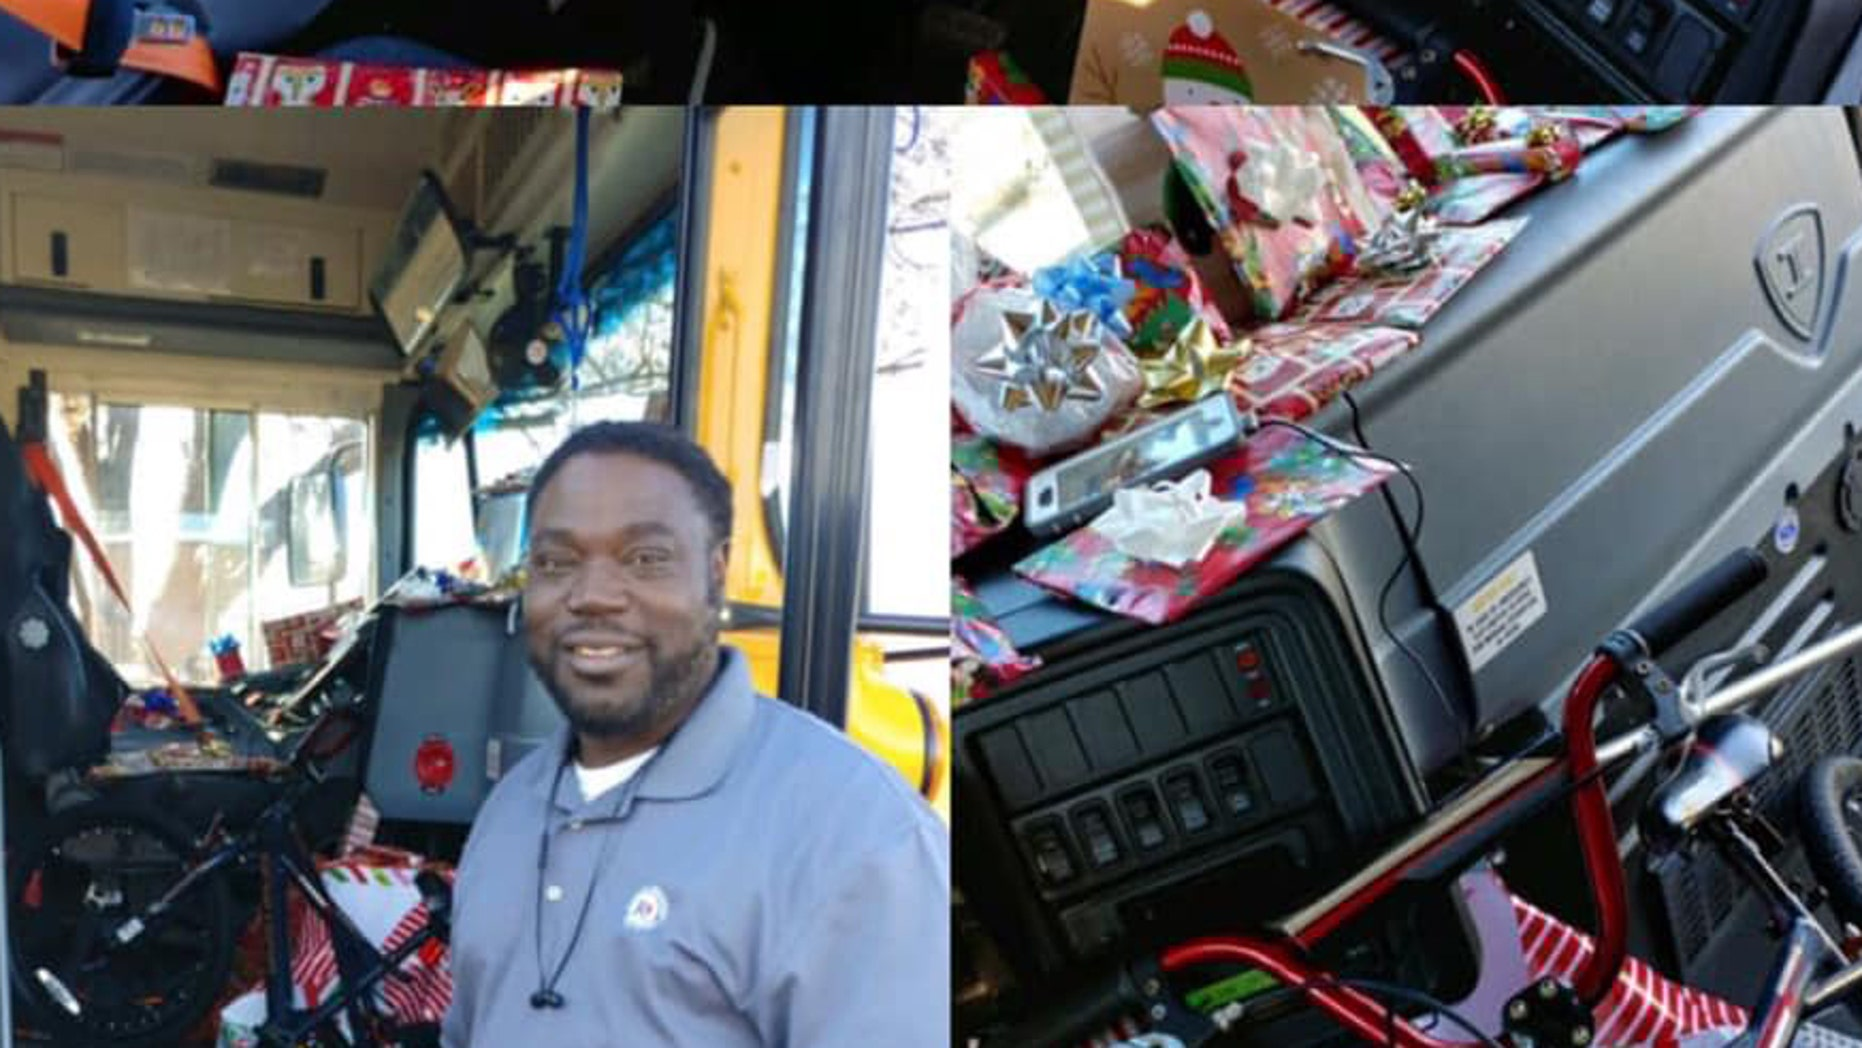 A Texas bus driver likely helped spread a bit of cheer this holiday season when he reportedly bought dozens of presents for kids on his route.